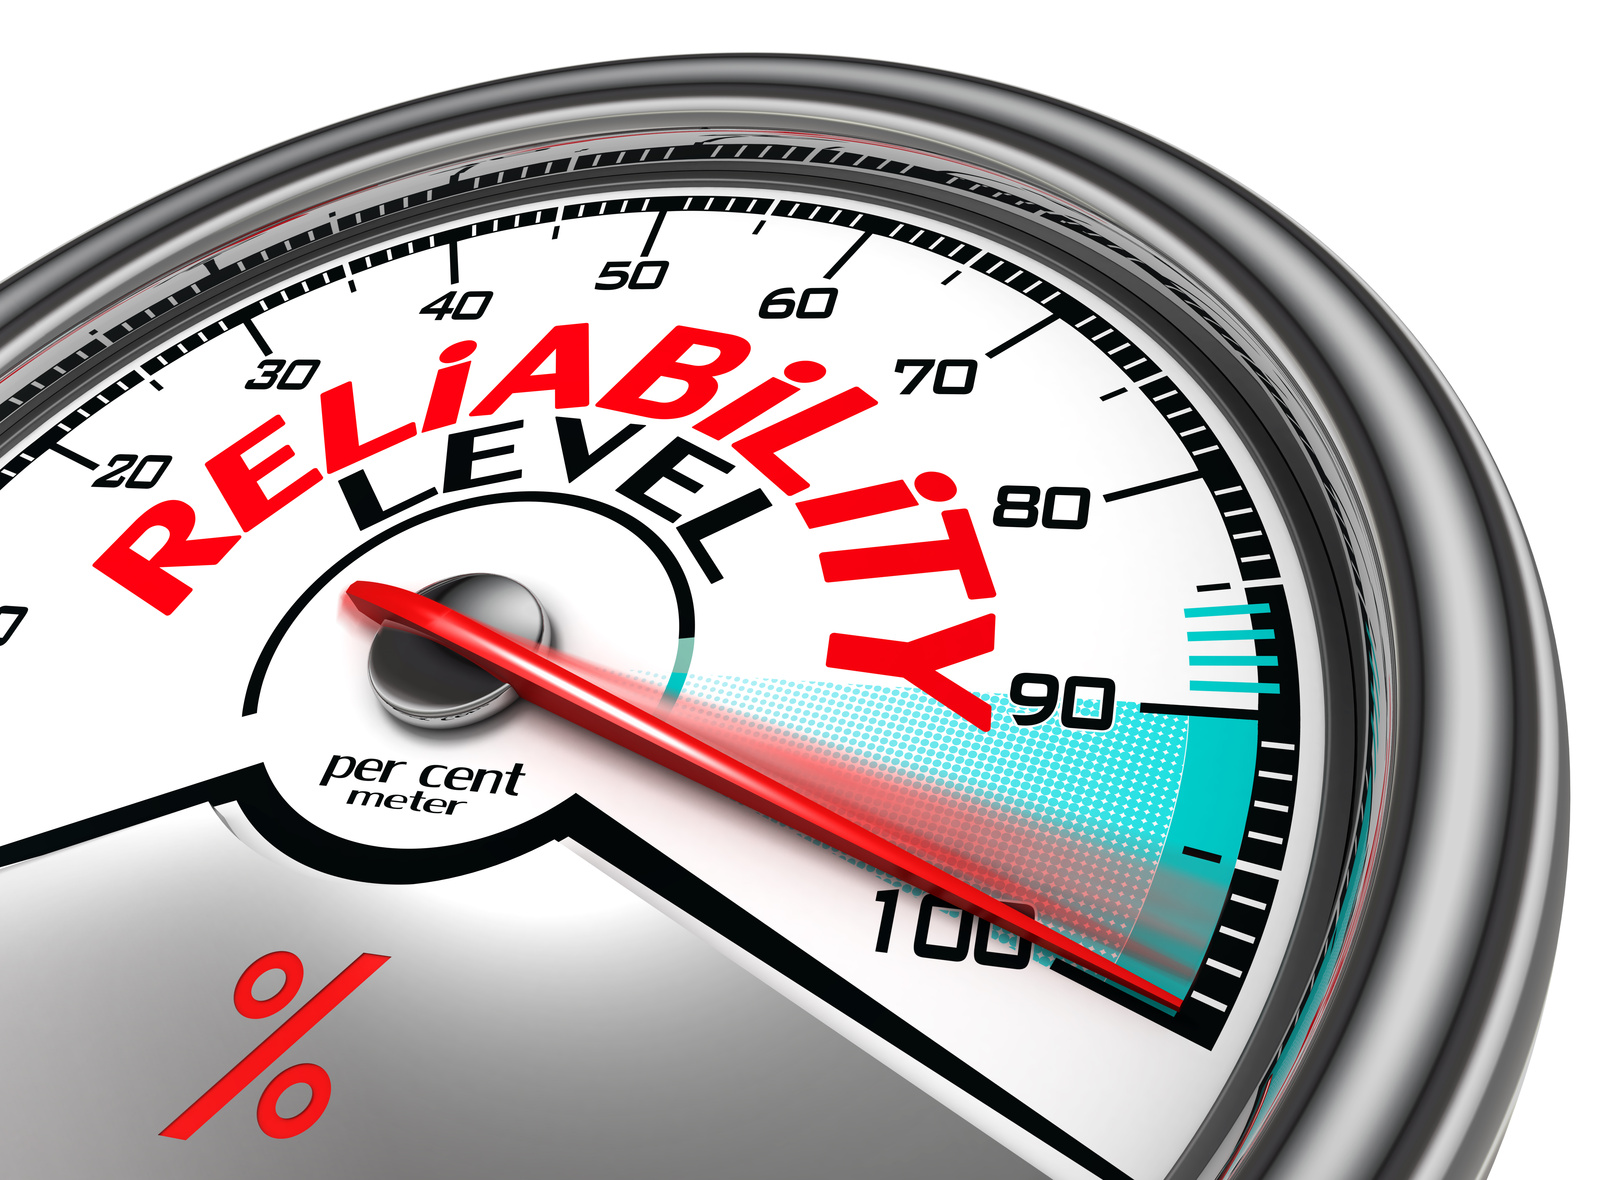 Before buying a moisture meter from any manufacturer, ask yourself: how reliable are they?